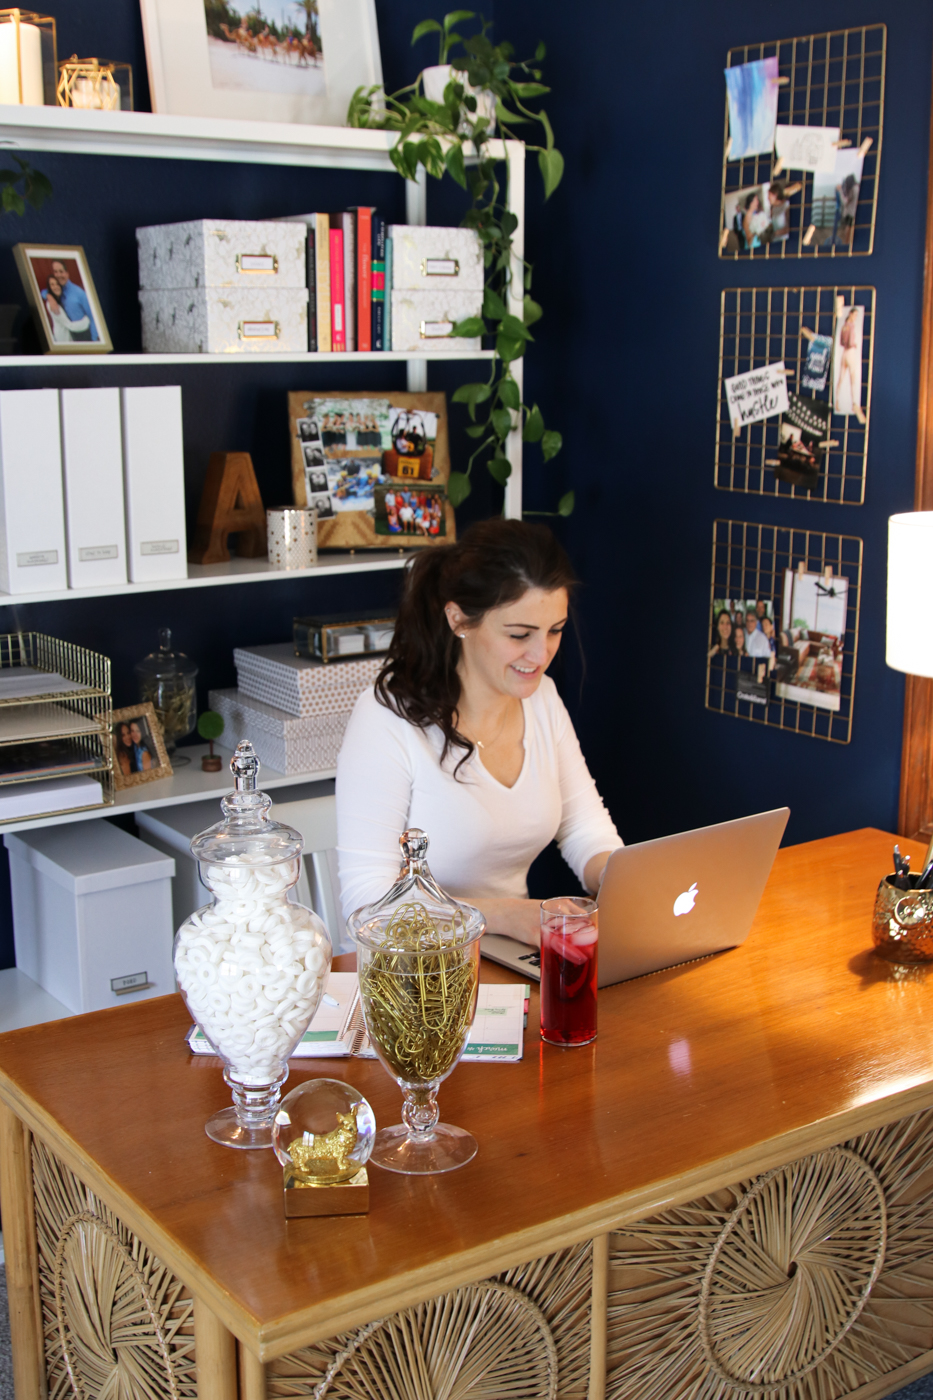 don39t love homeoffice. Auto, Life Documents/manuals/tax Info/mail/etc., Though, And As My Has Changed Over The Course Of Last 6 Months A Home Office Started Sounding Don39t Love Homeoffice E